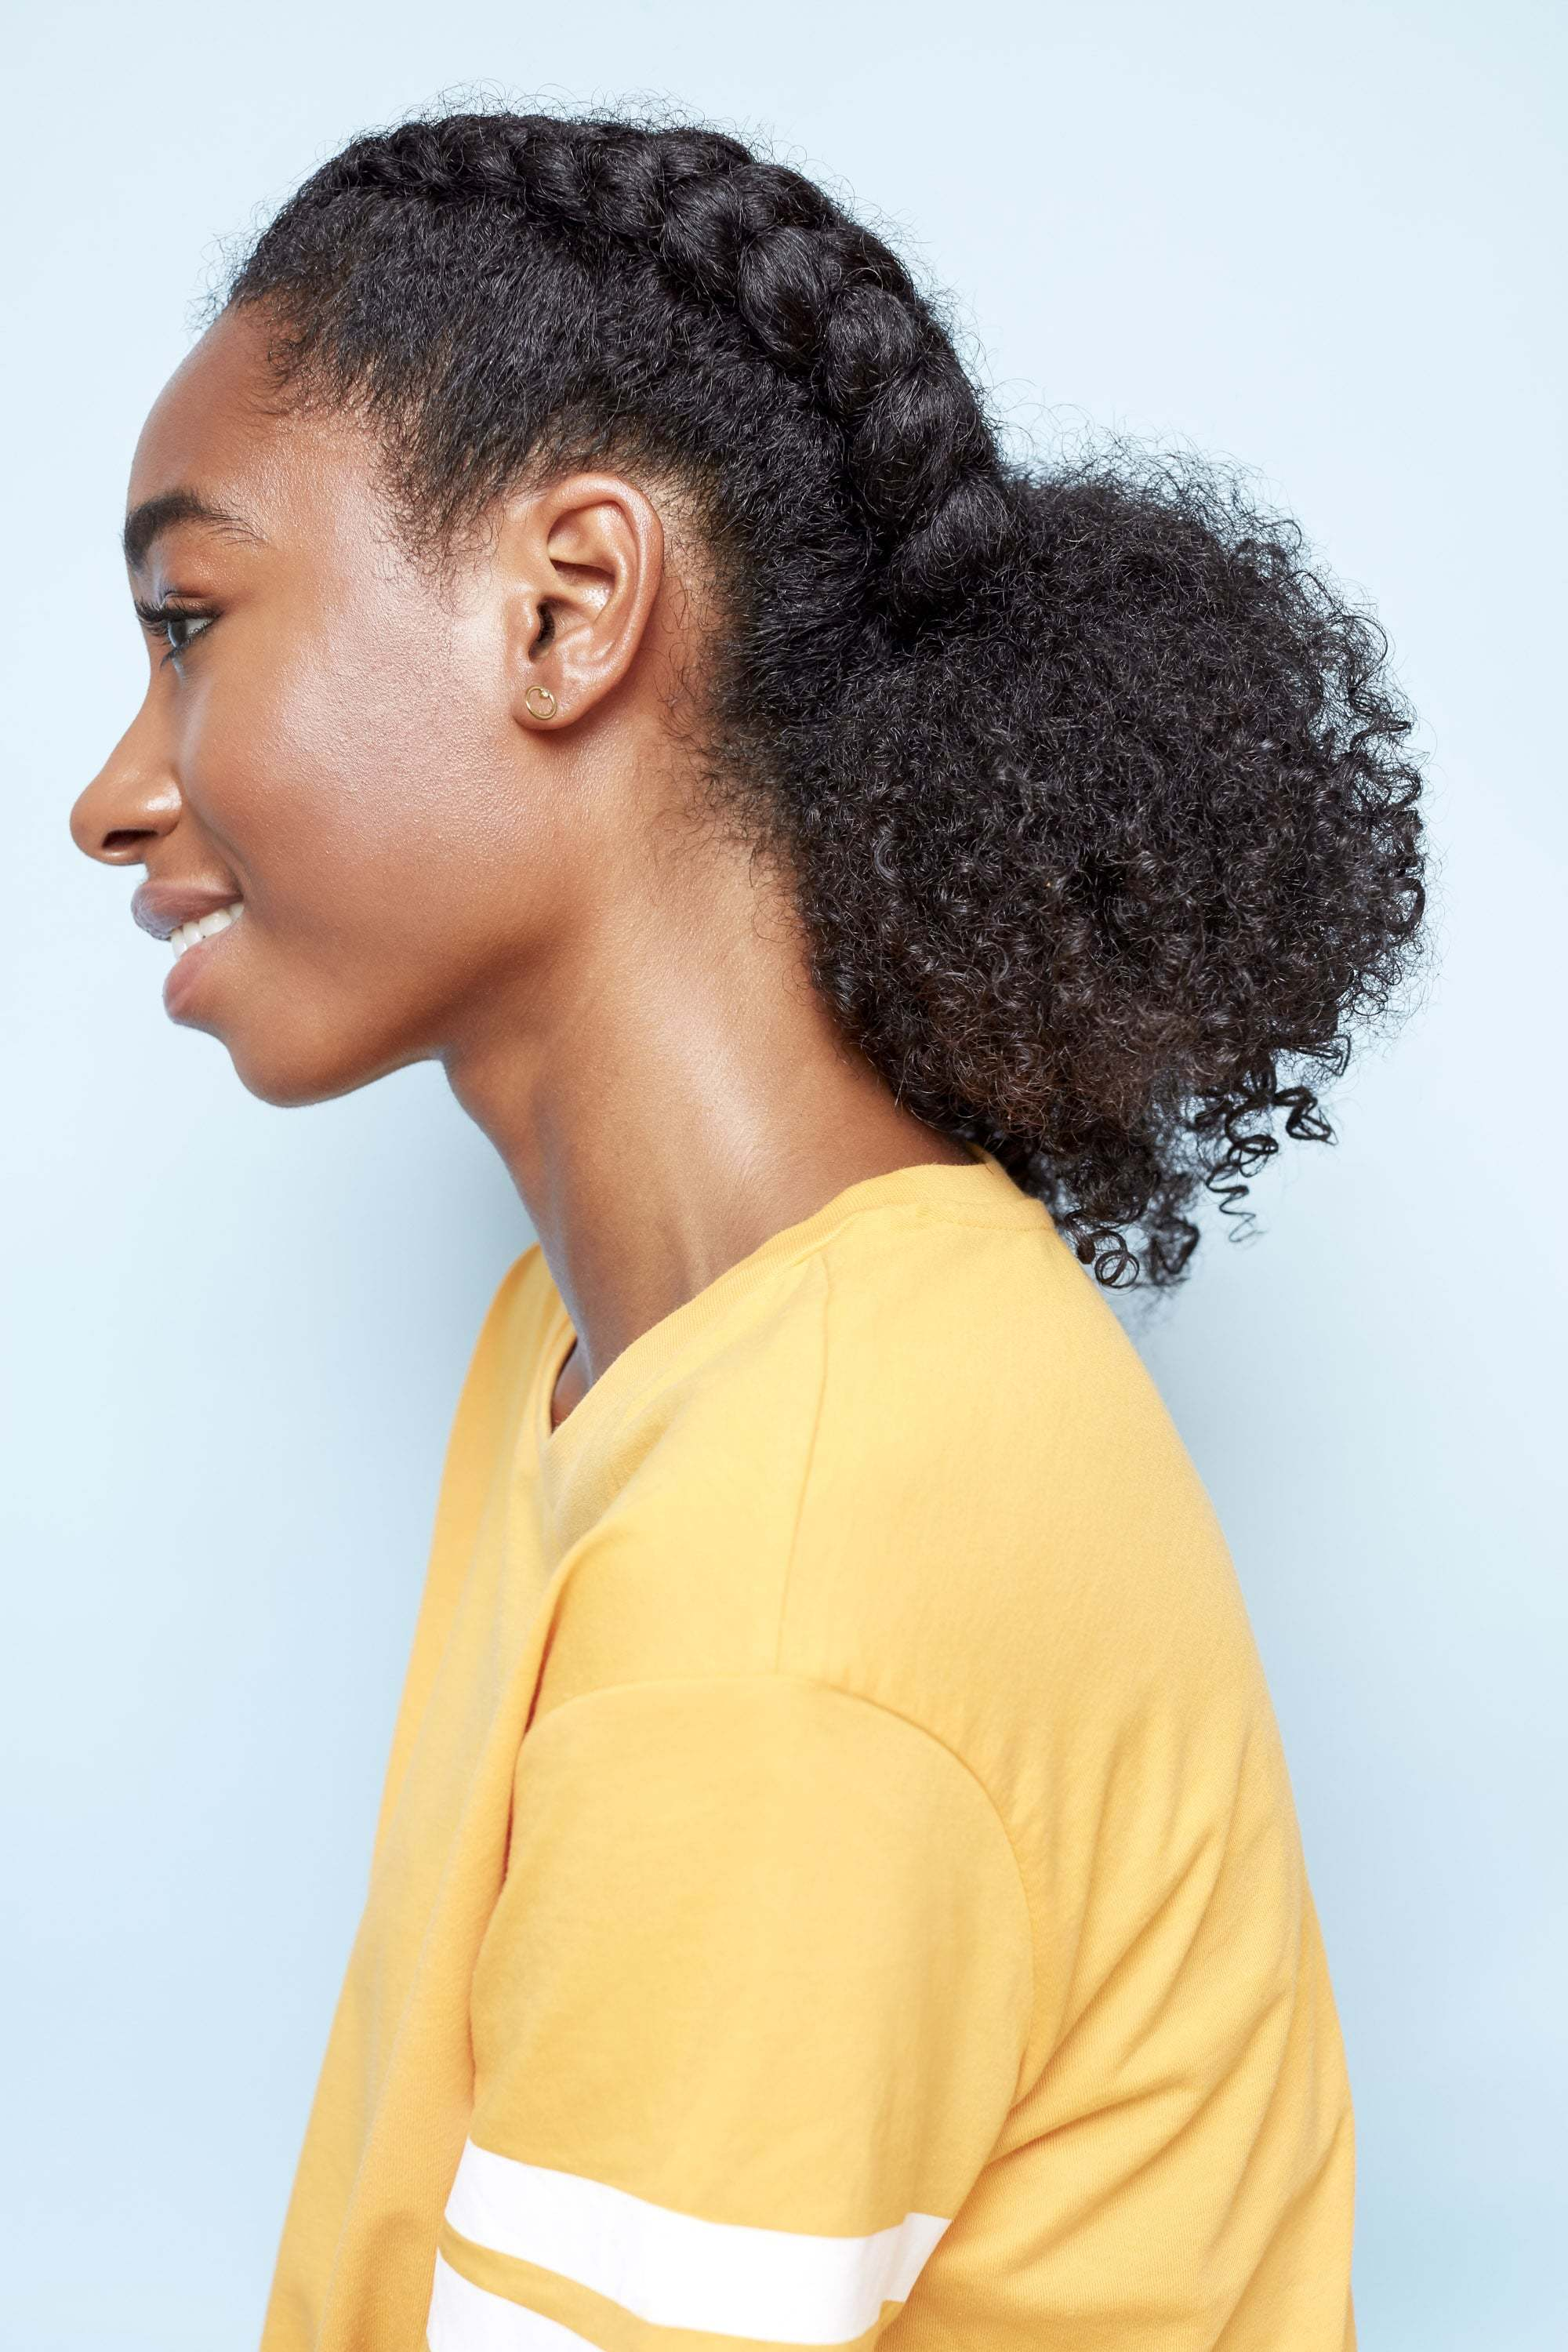 hairstyles for black women: close up shot of a woman with a dark brown afro hair fashioned into a braided, low ponytail posing outside